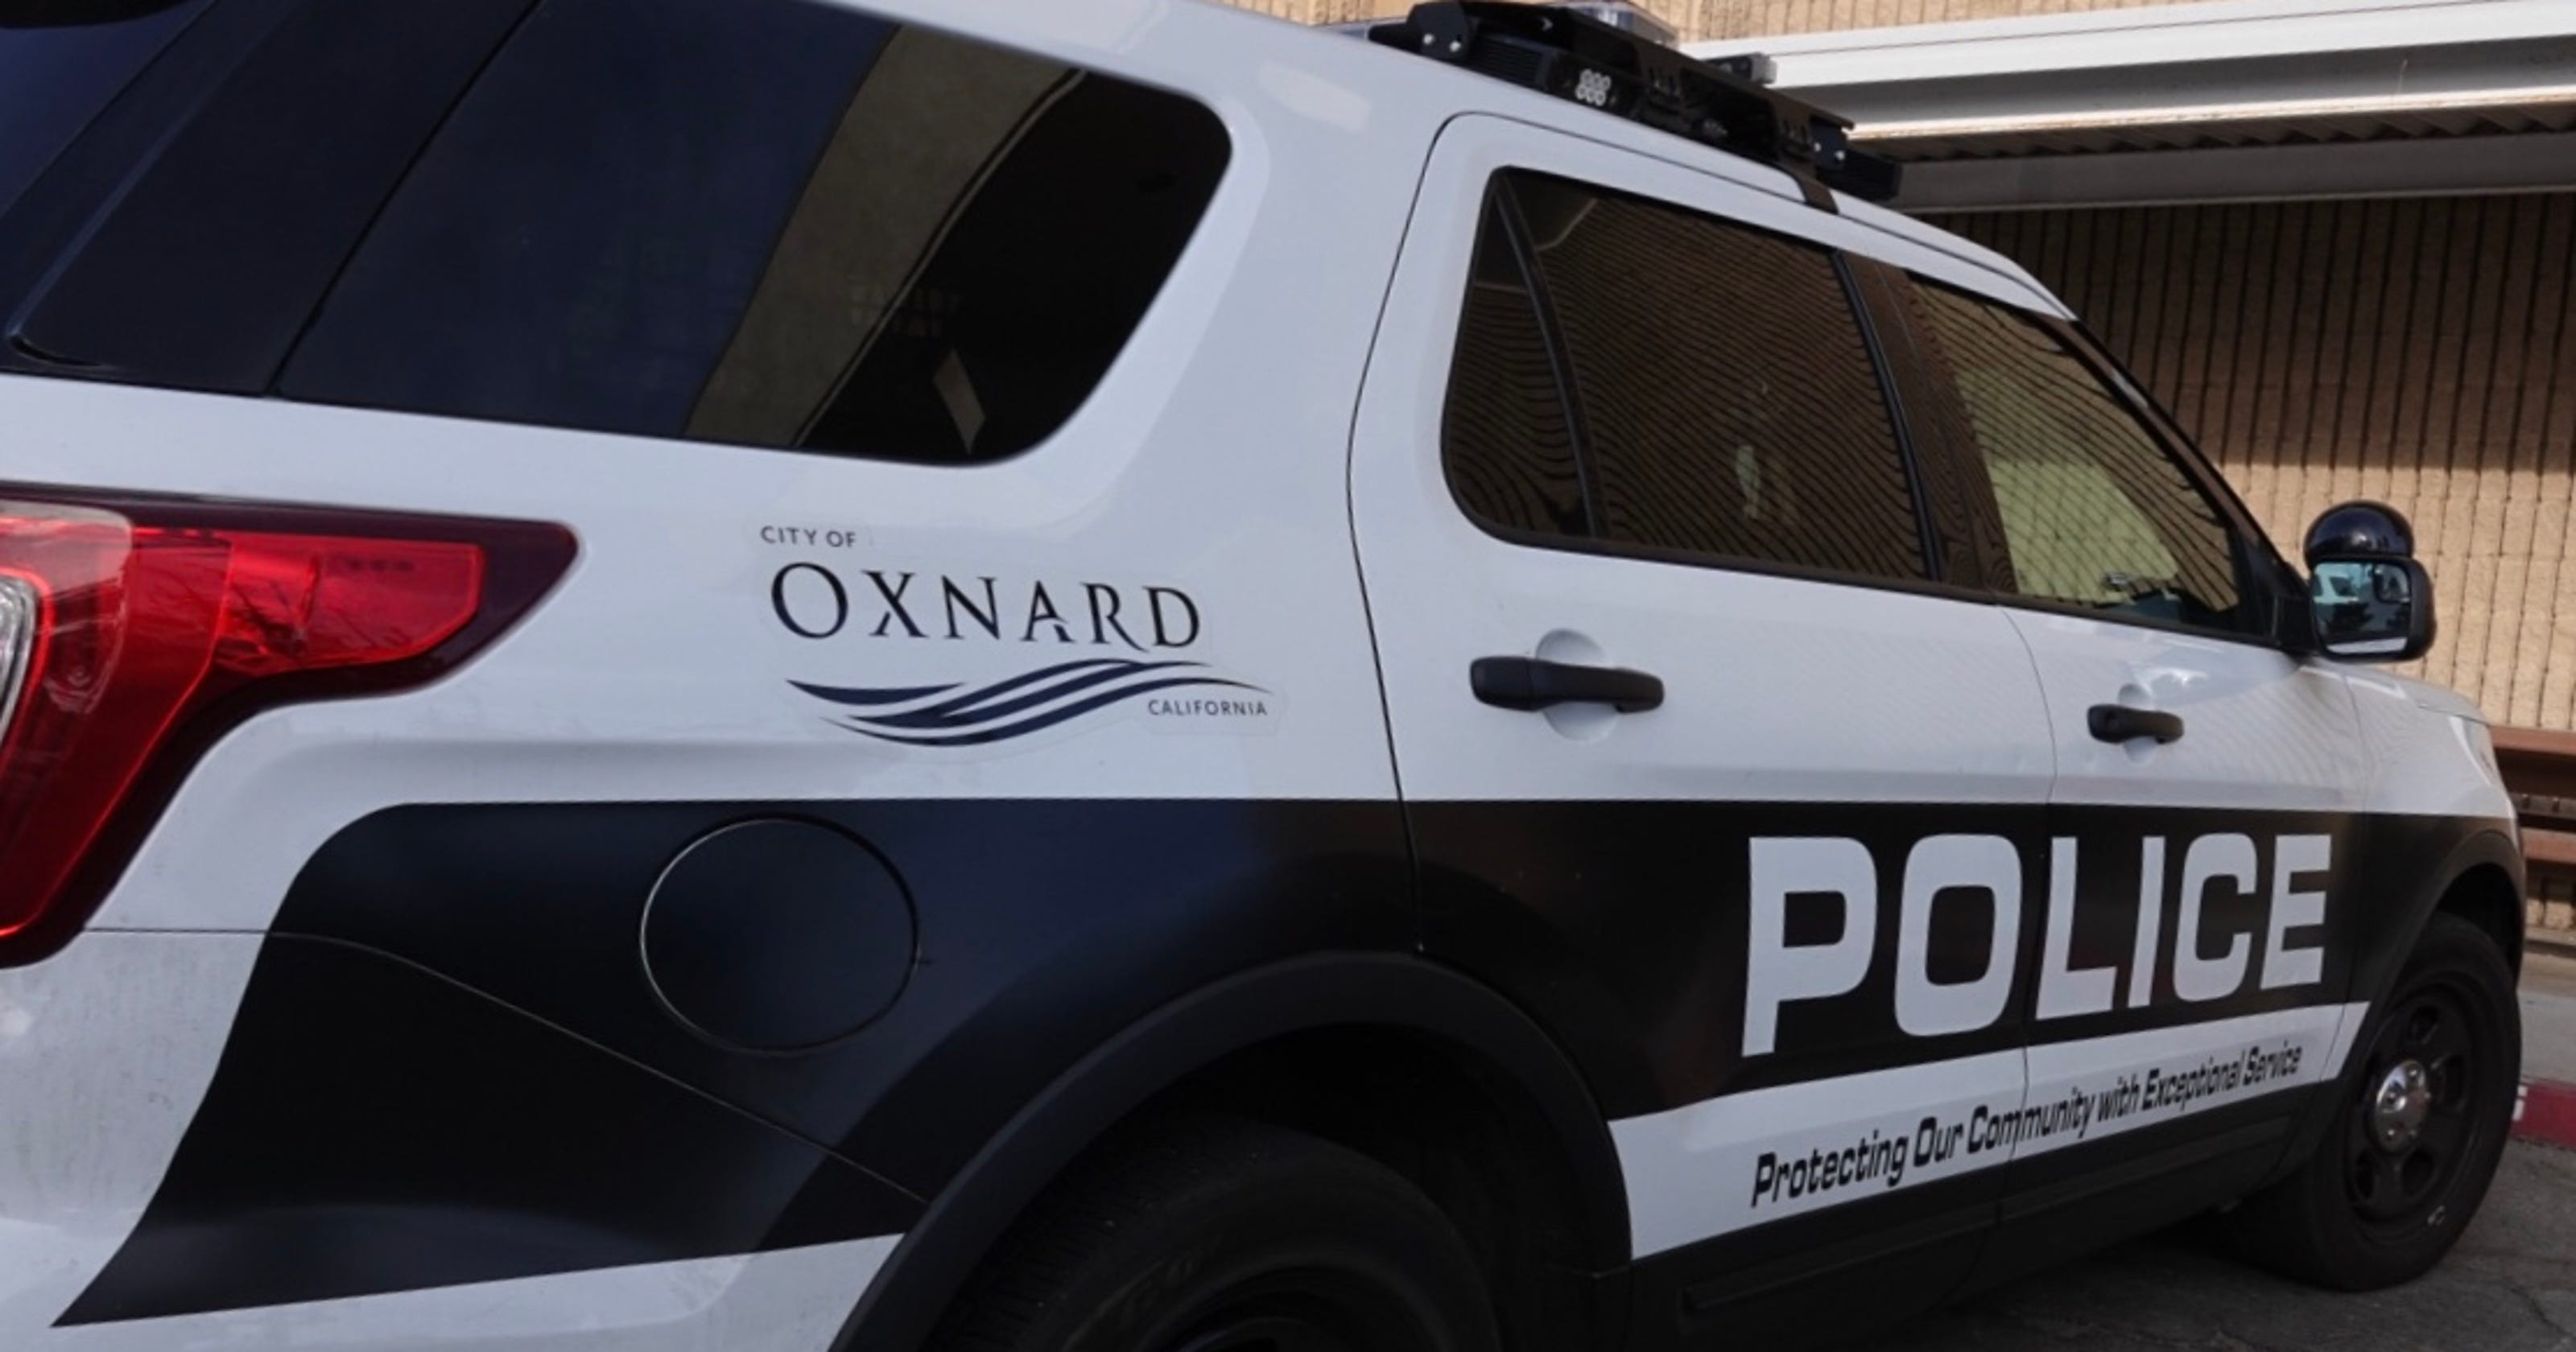 Search warrant after Oxnard robbery leads to 4 arrests